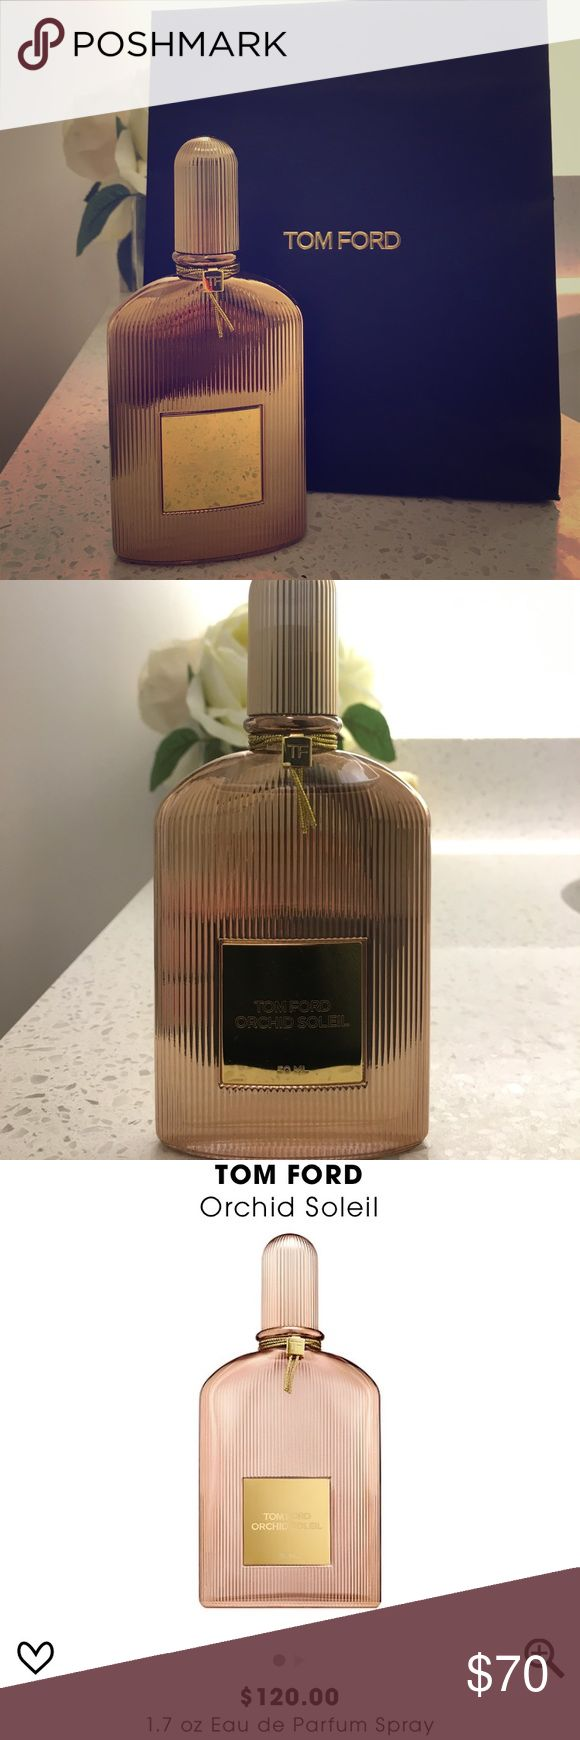 Tom Ford Orchid Soleil Eau de Parfum Spray 50ml Never been used Tom Ford perfume! Tom Ford Other